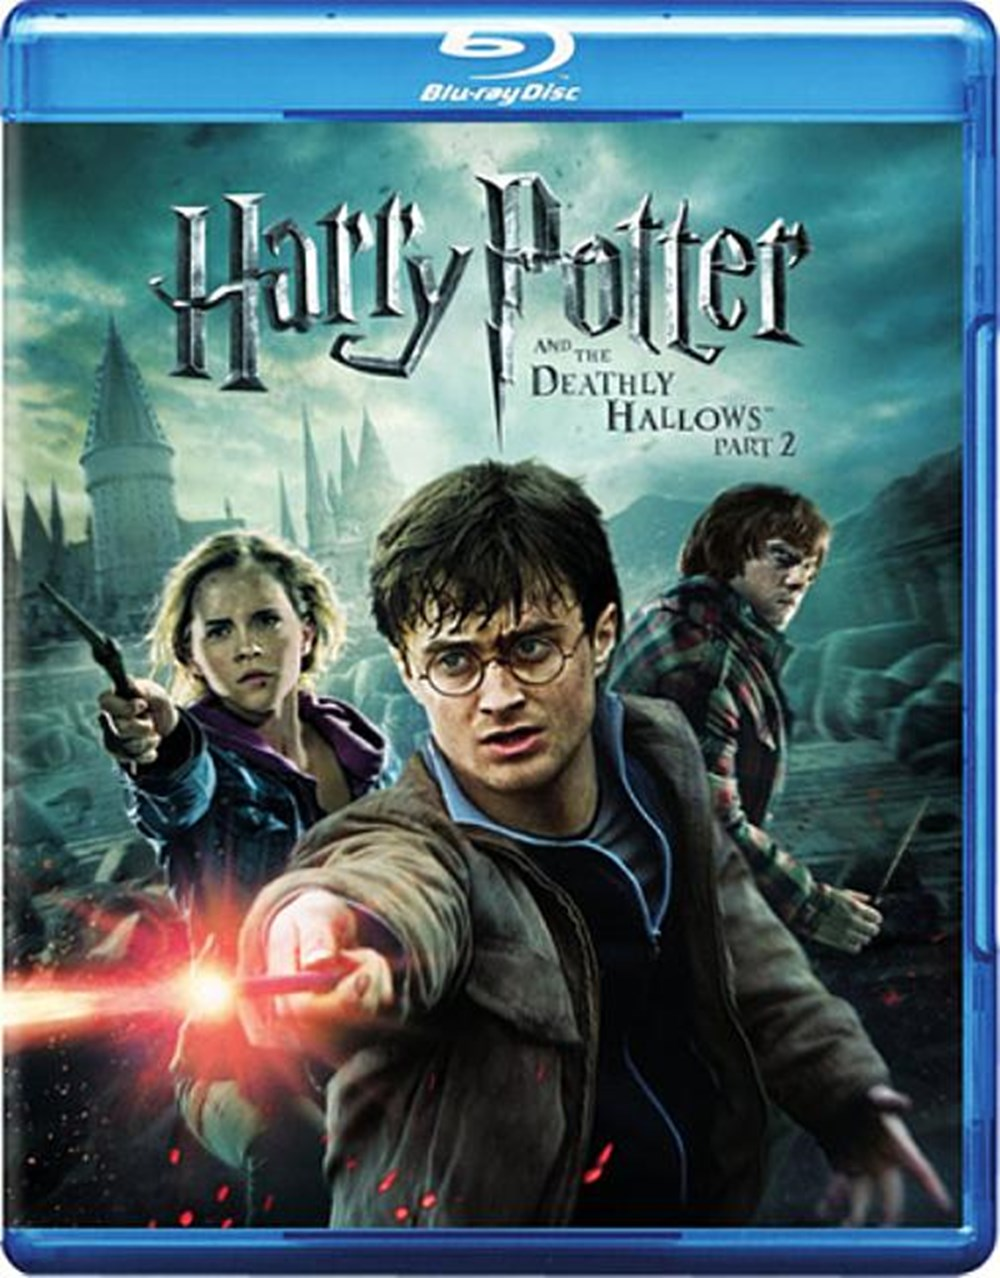 Harry Potter and the Deathly Hallows Part 2 (DVD & Digital Copy Included)